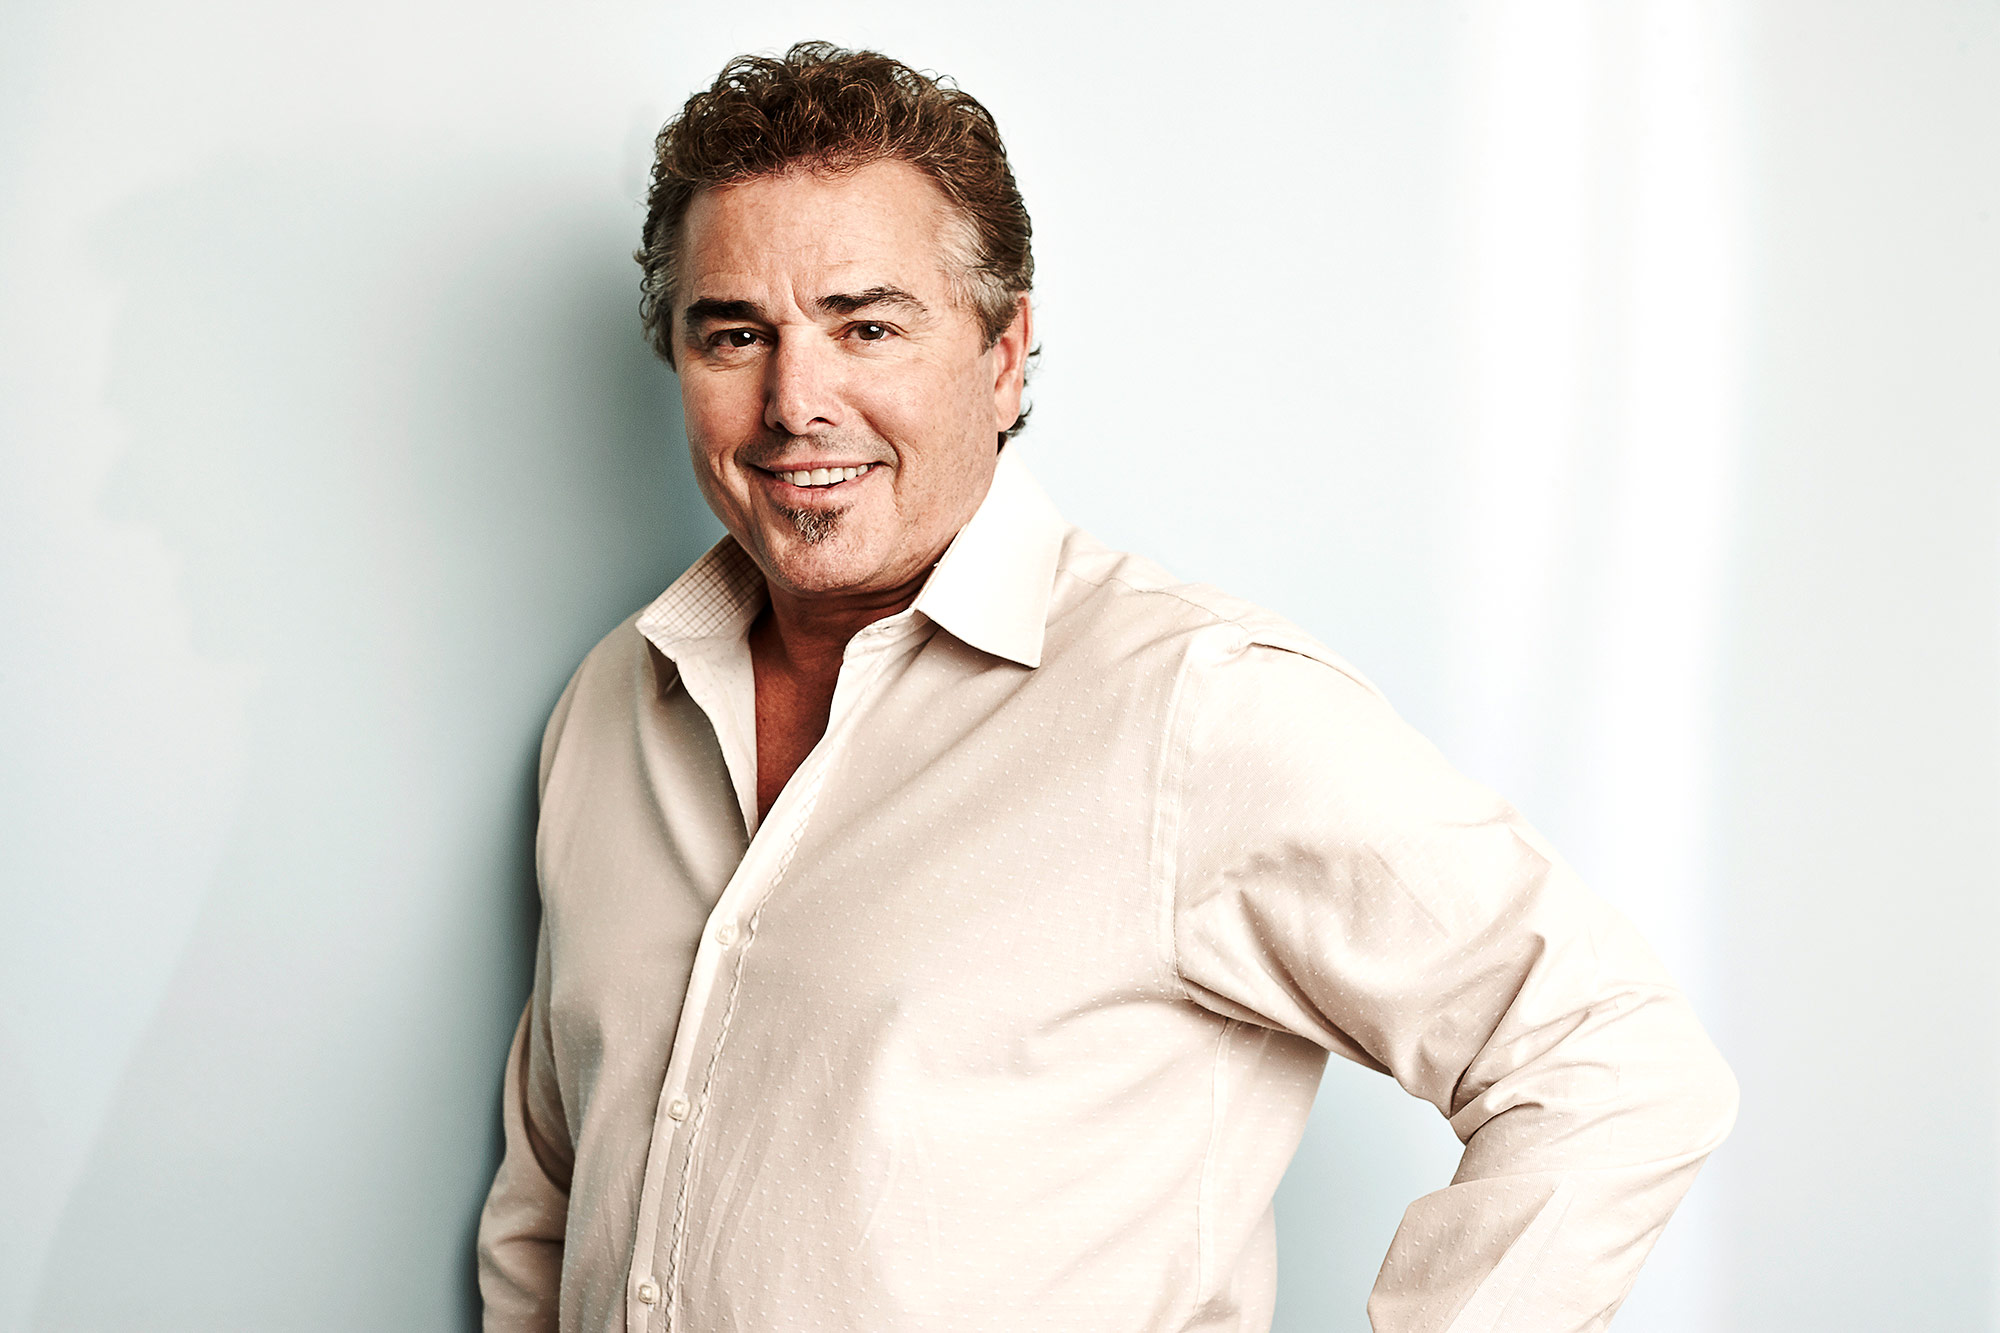 BEVERLY HILLS, CA - JULY 11: Actor Christopher Knight poses for a portrait at the Summer TCA Portrait Session 2014 on July 11, 2014 in Beverly Hills, California. (Photo by Maarten de Boer/Getty Images)